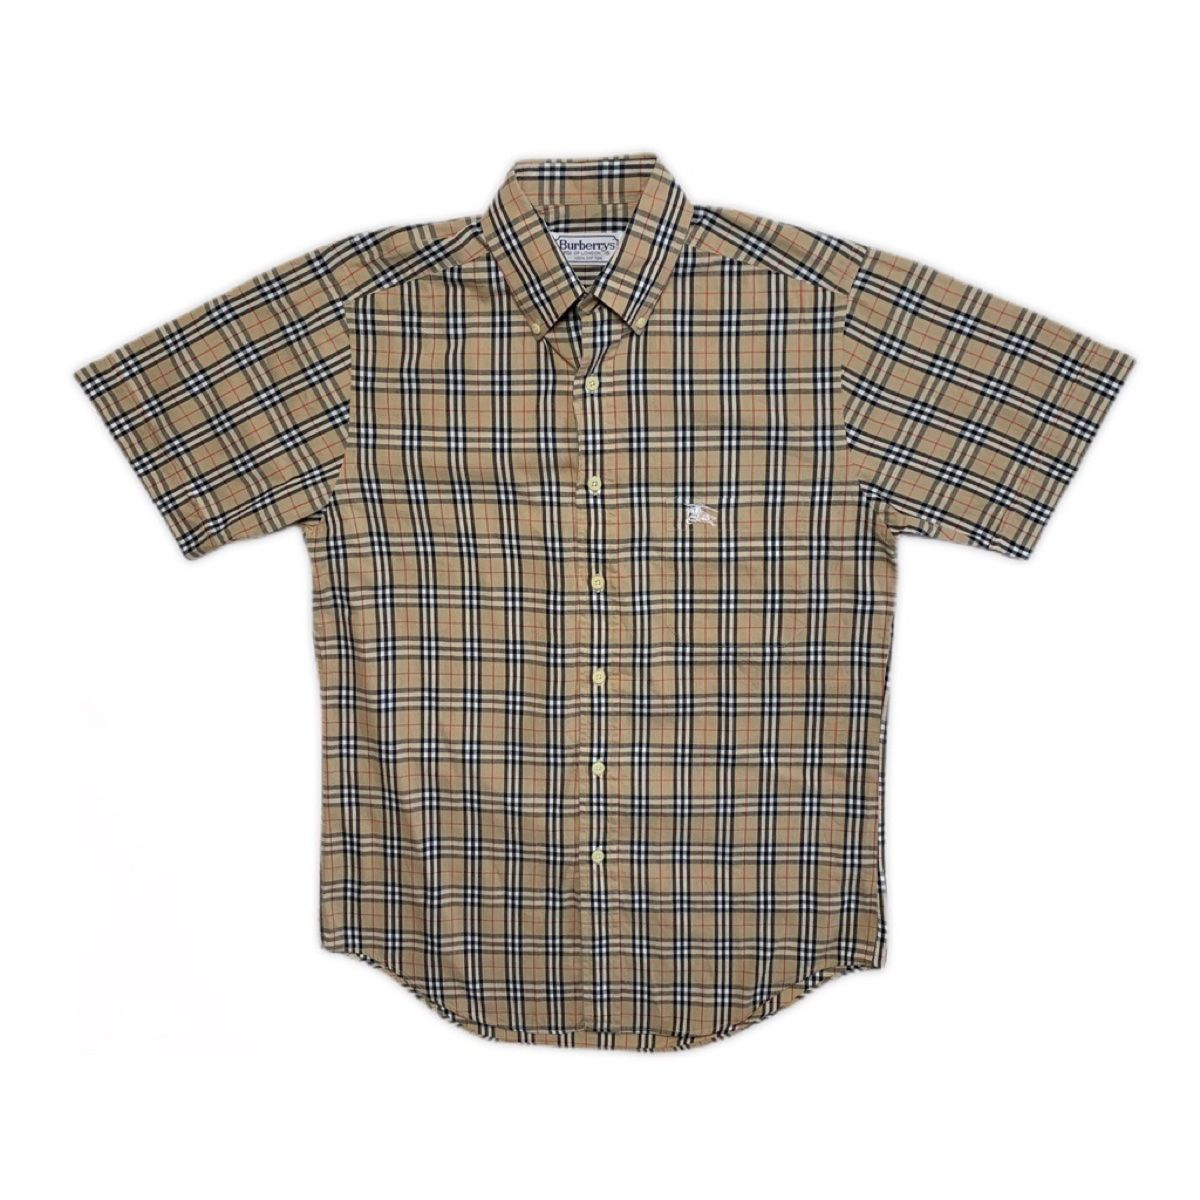 Vintage Burberry Nova Check Short Sleeve Shirt